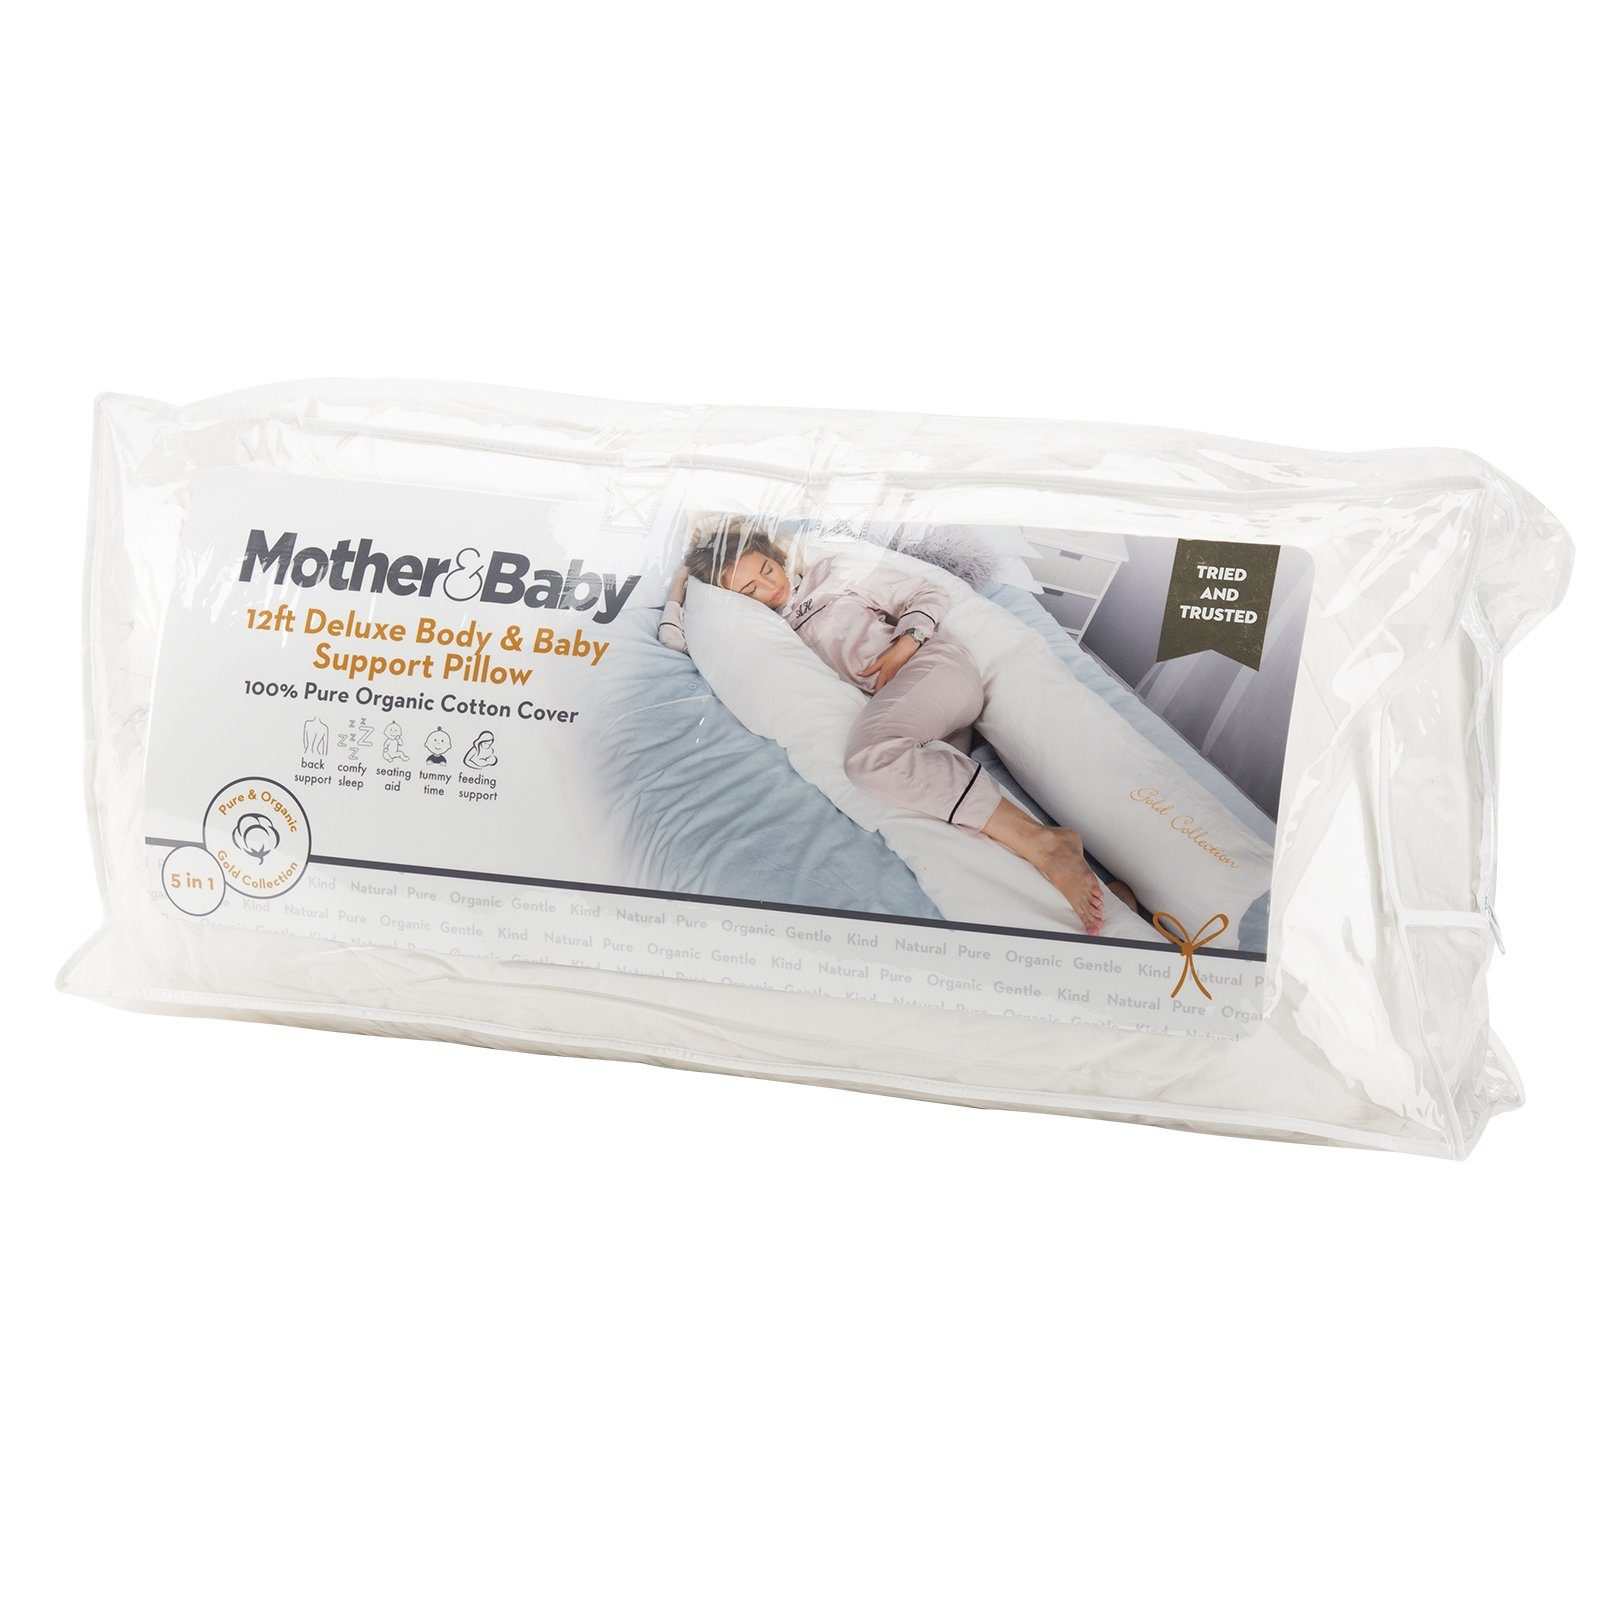 Mother&Baby Organic Cotton 12ft Deluxe Body and Baby Support Pillow Mother & Baby